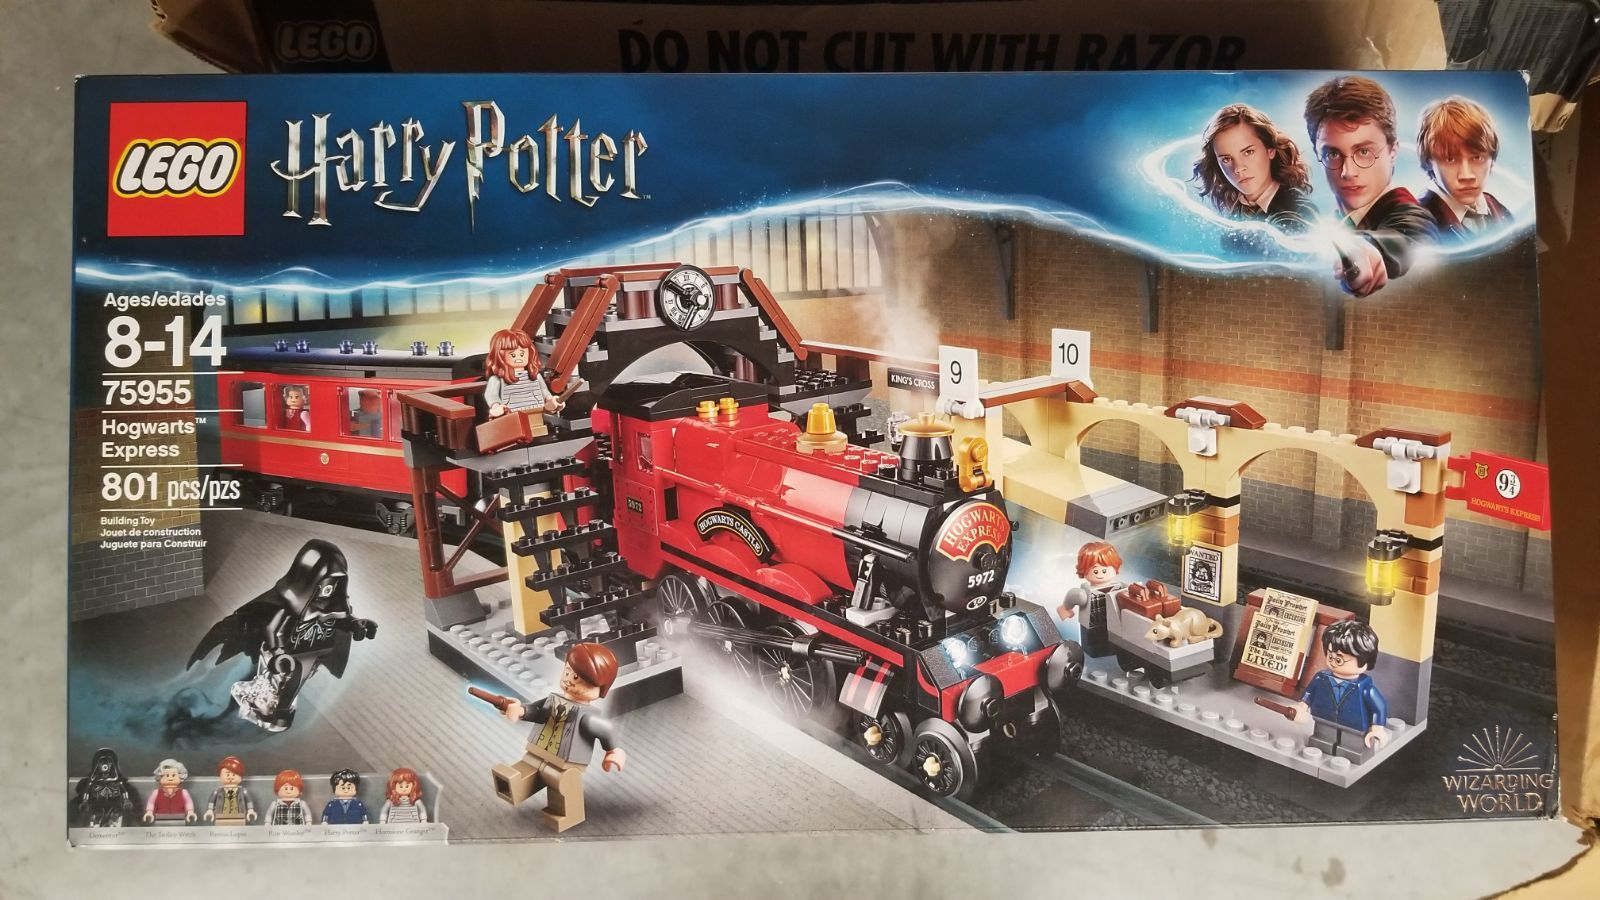 Professor Remus Minifigure from 75955 Hogwarts Express Train LEGO Harry Potter